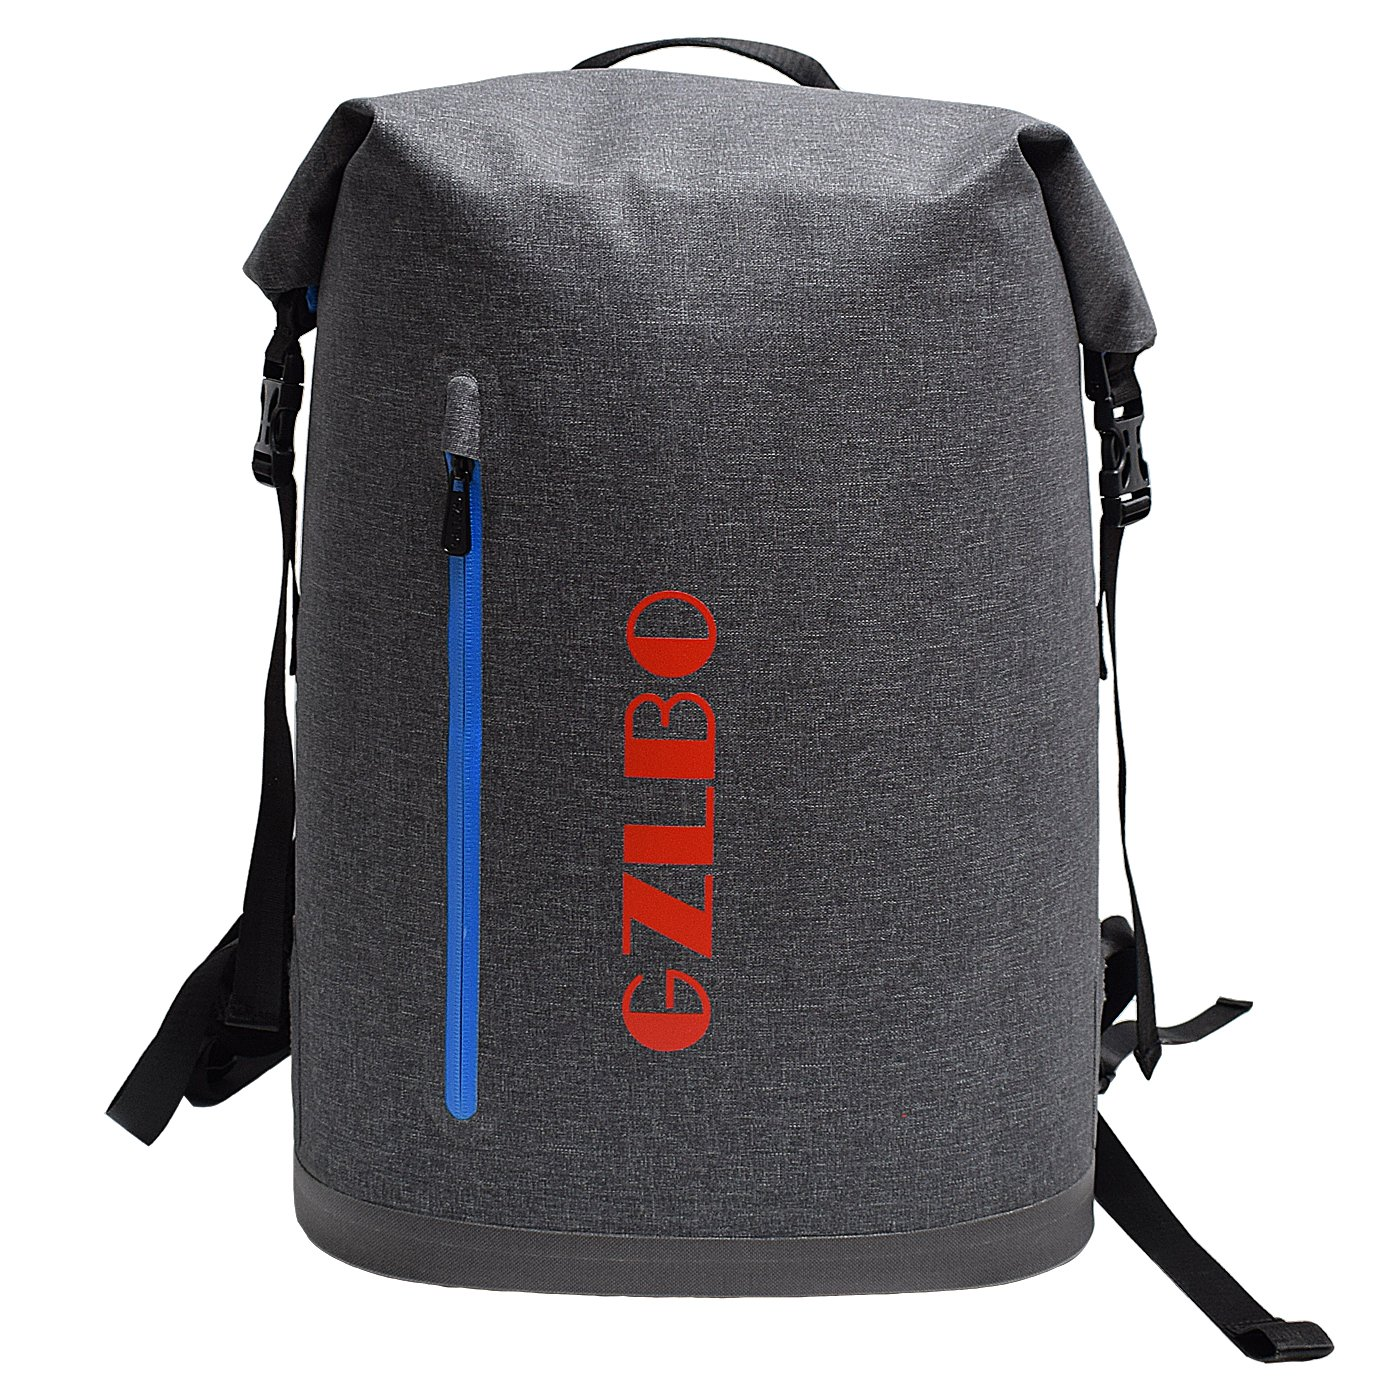 GZLBO 40 Can Soft Cooler Bag Waterproof Insulated Cooler Backpack